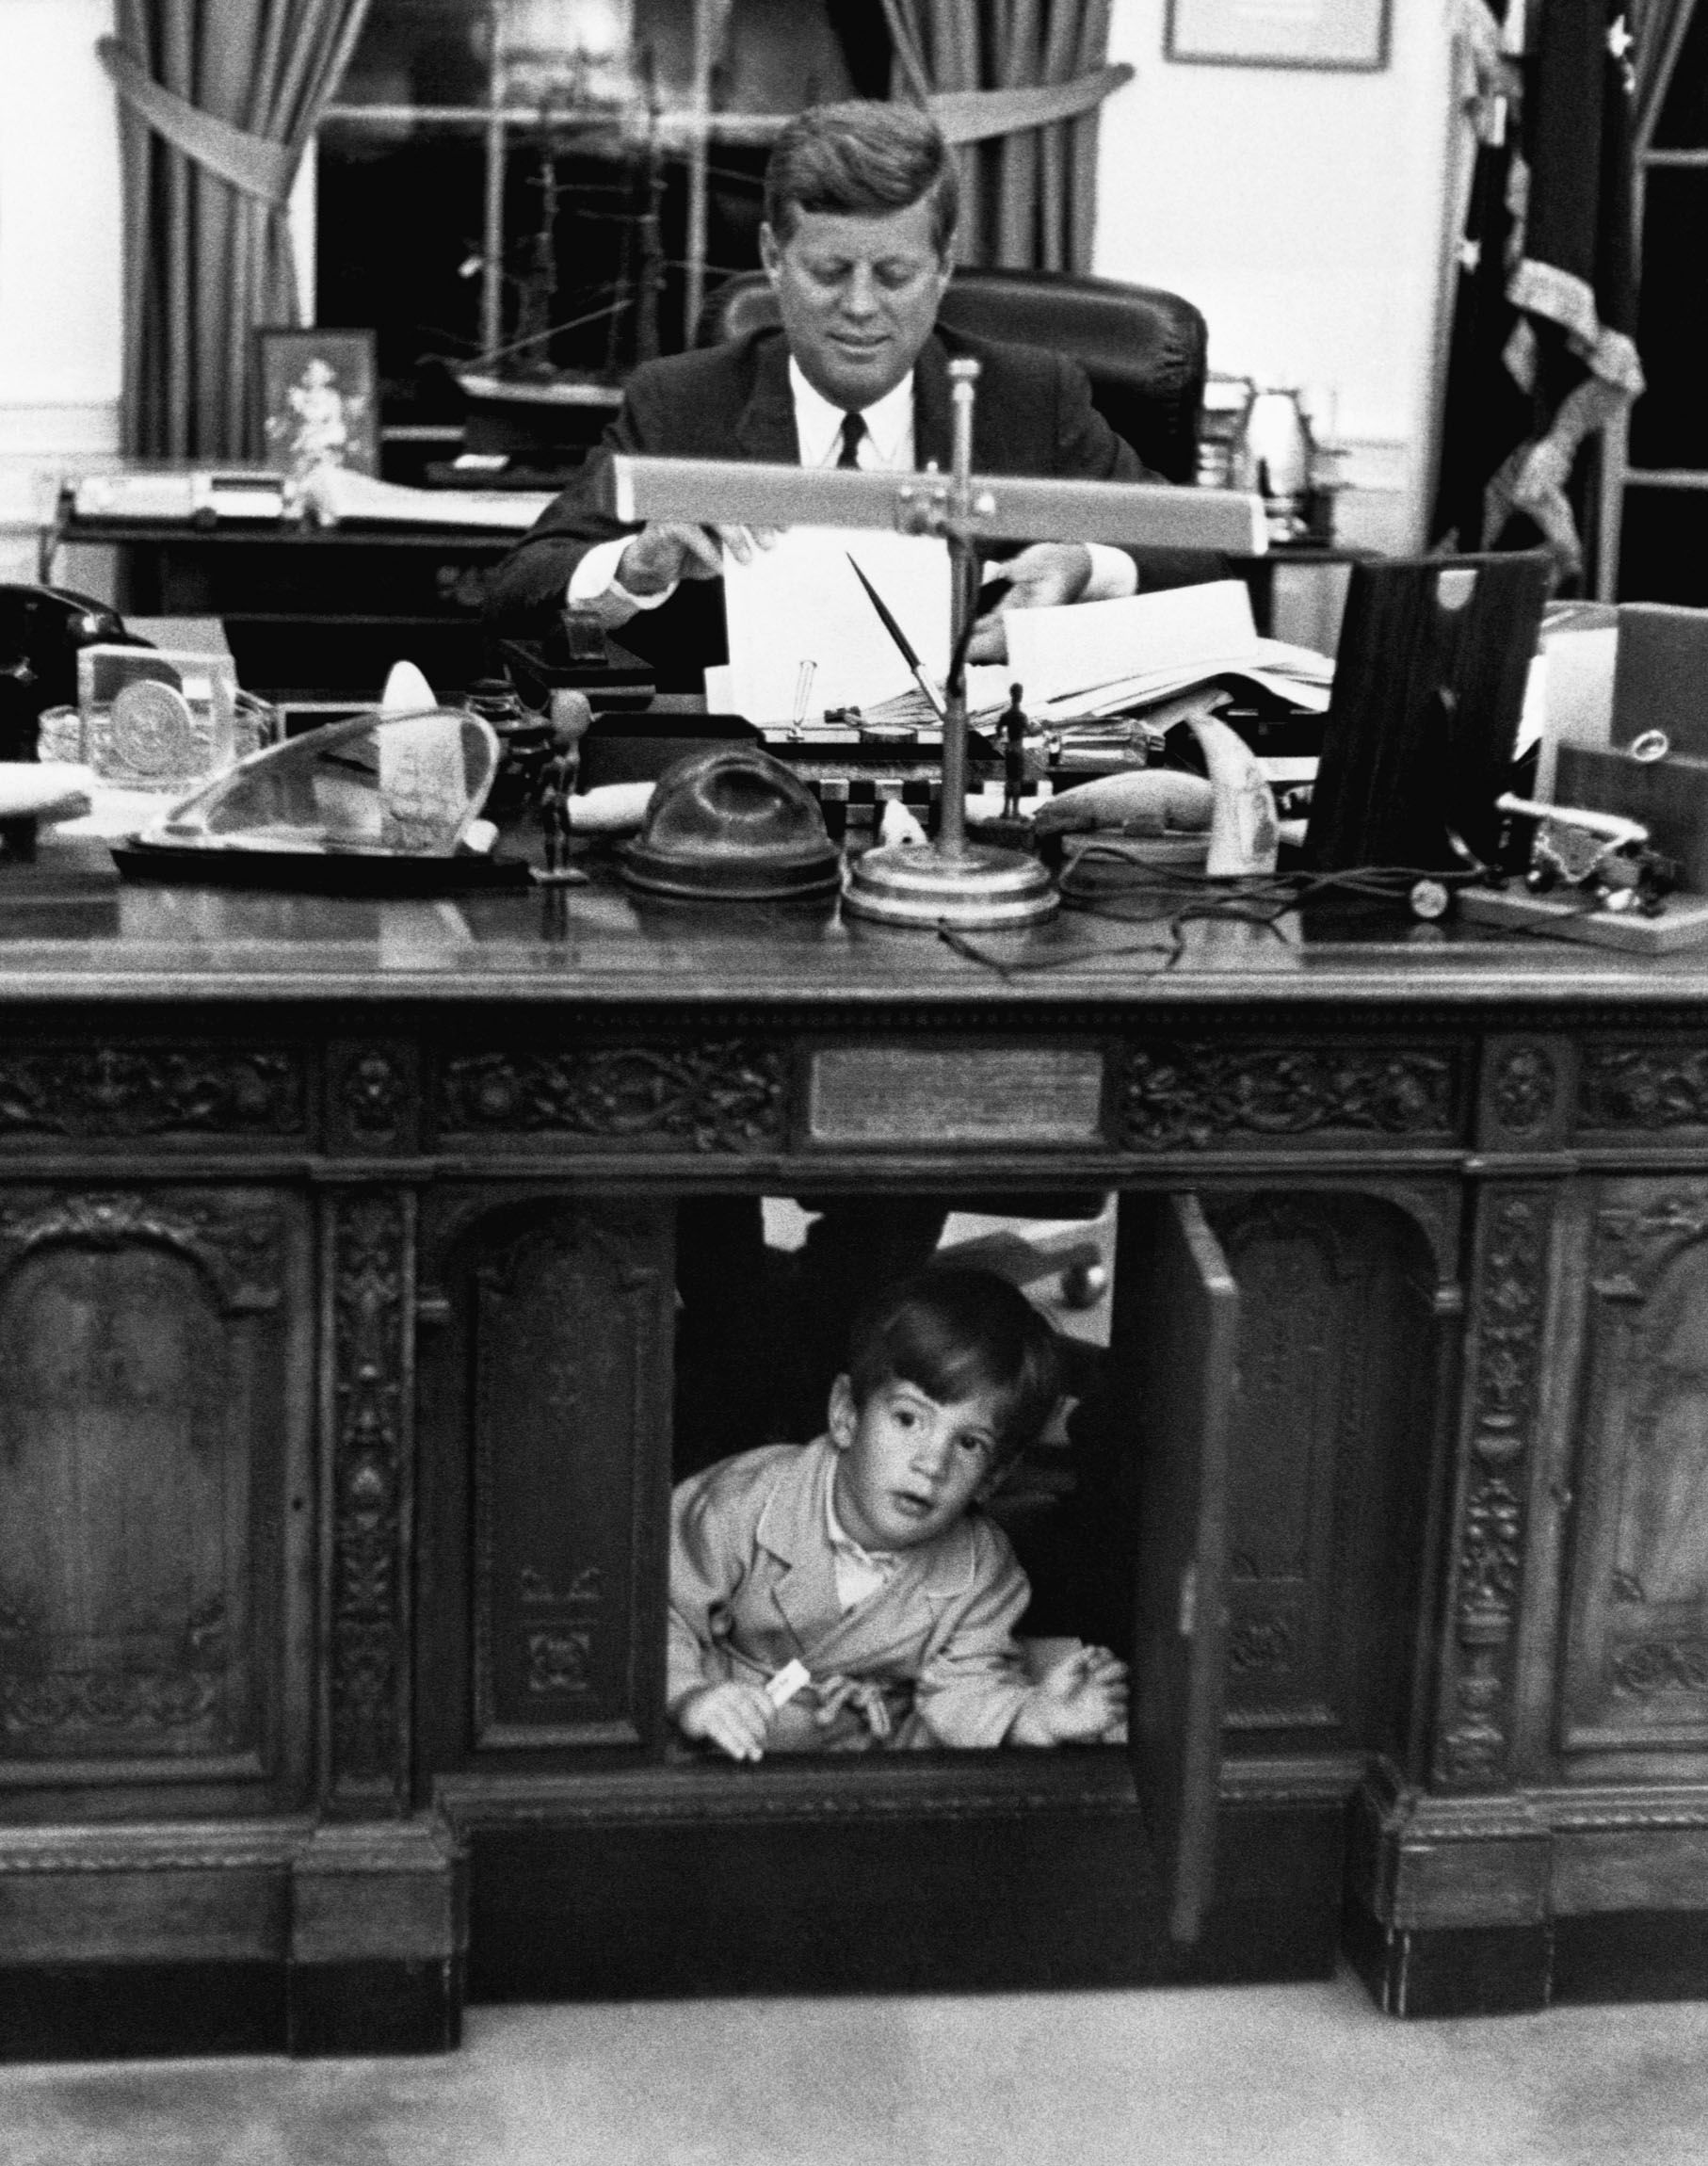 John F. Kennedy Jr. exploring his father's desk in 1962.